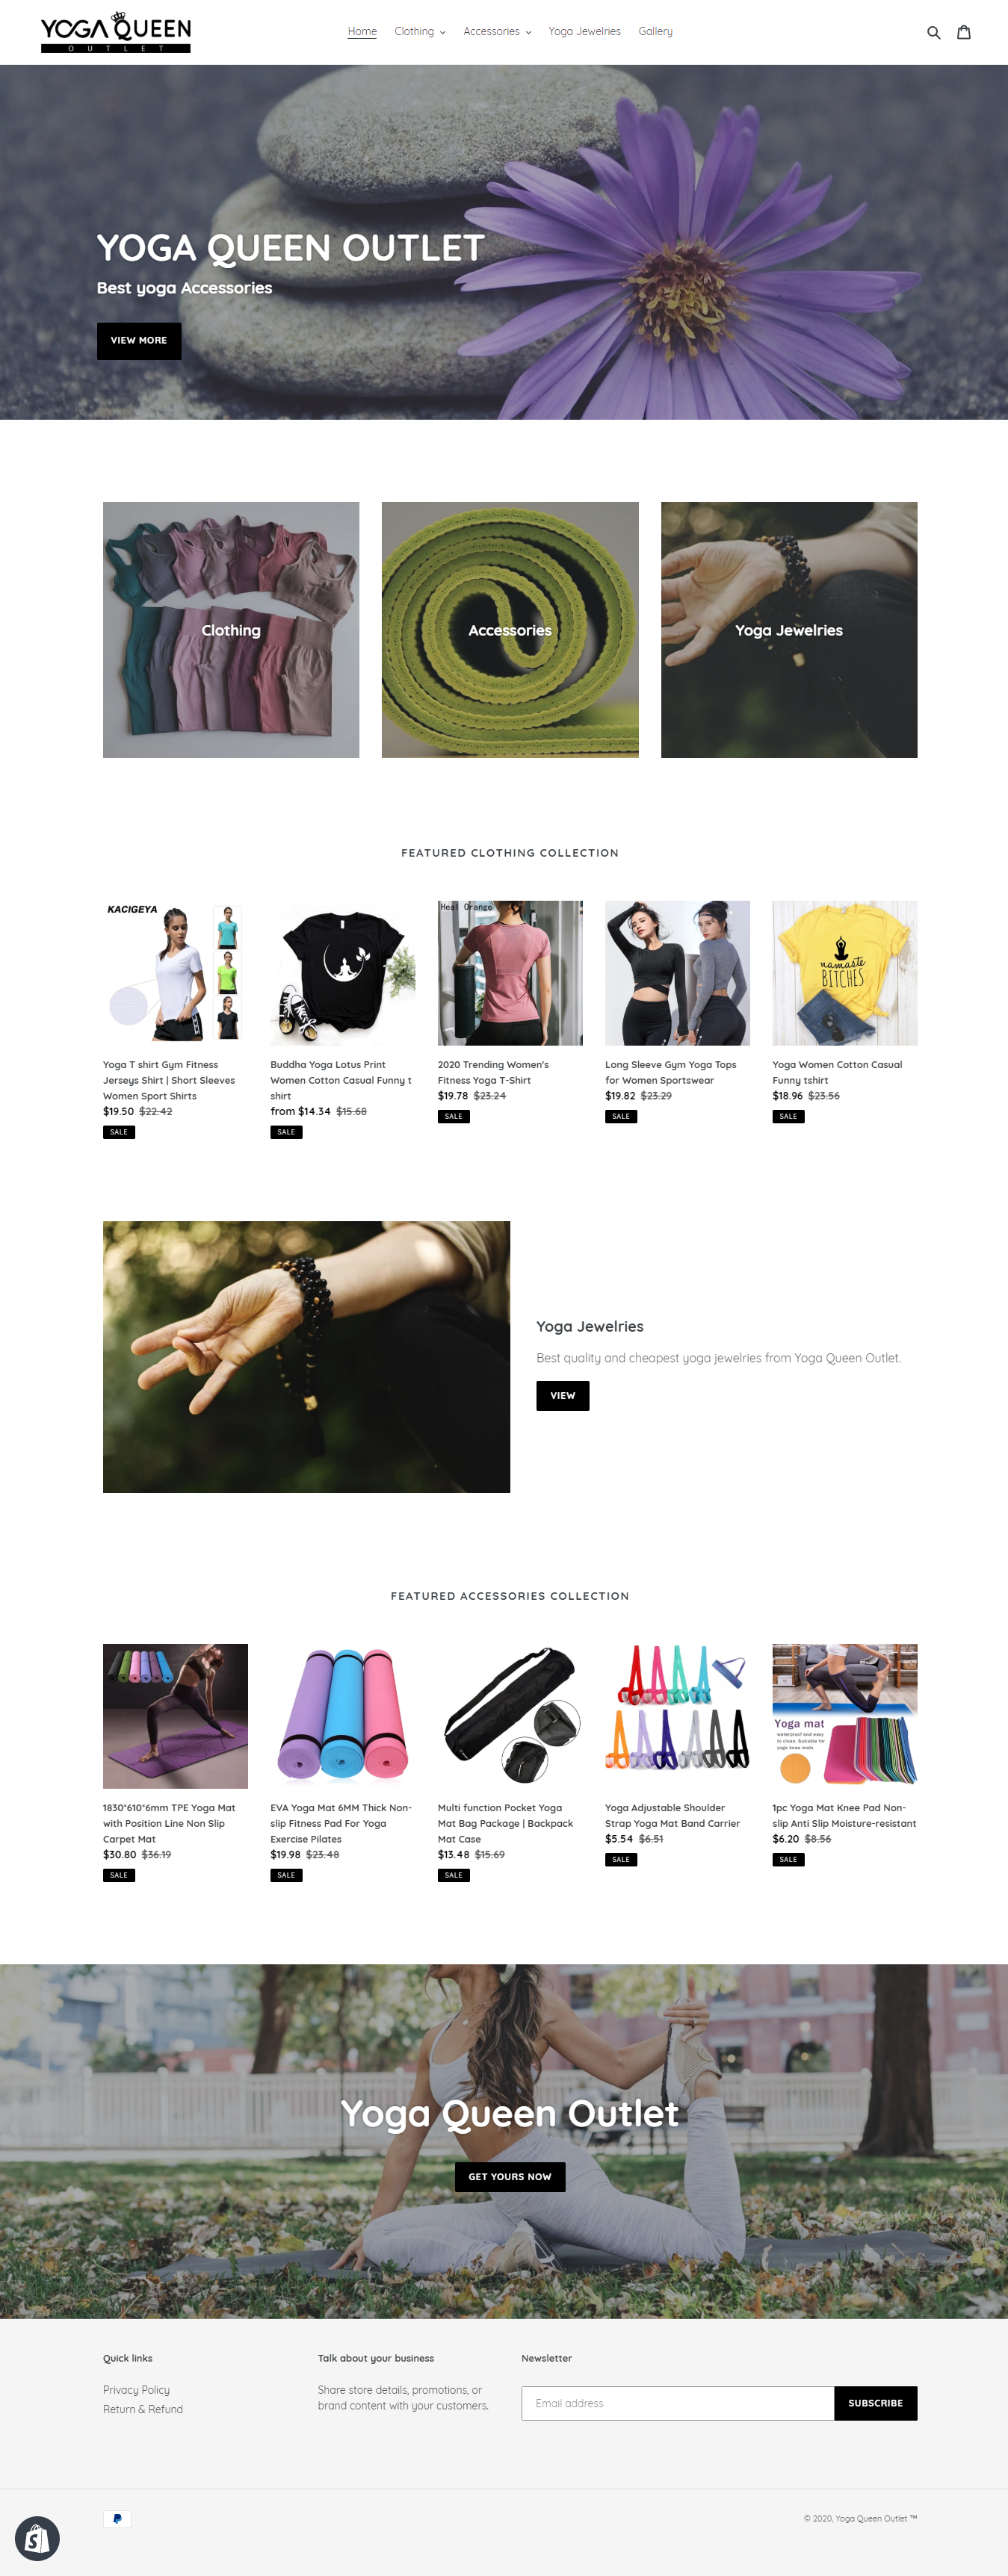 Get a well designed Passive Shopify Dropshipping Store Ready in 5 days